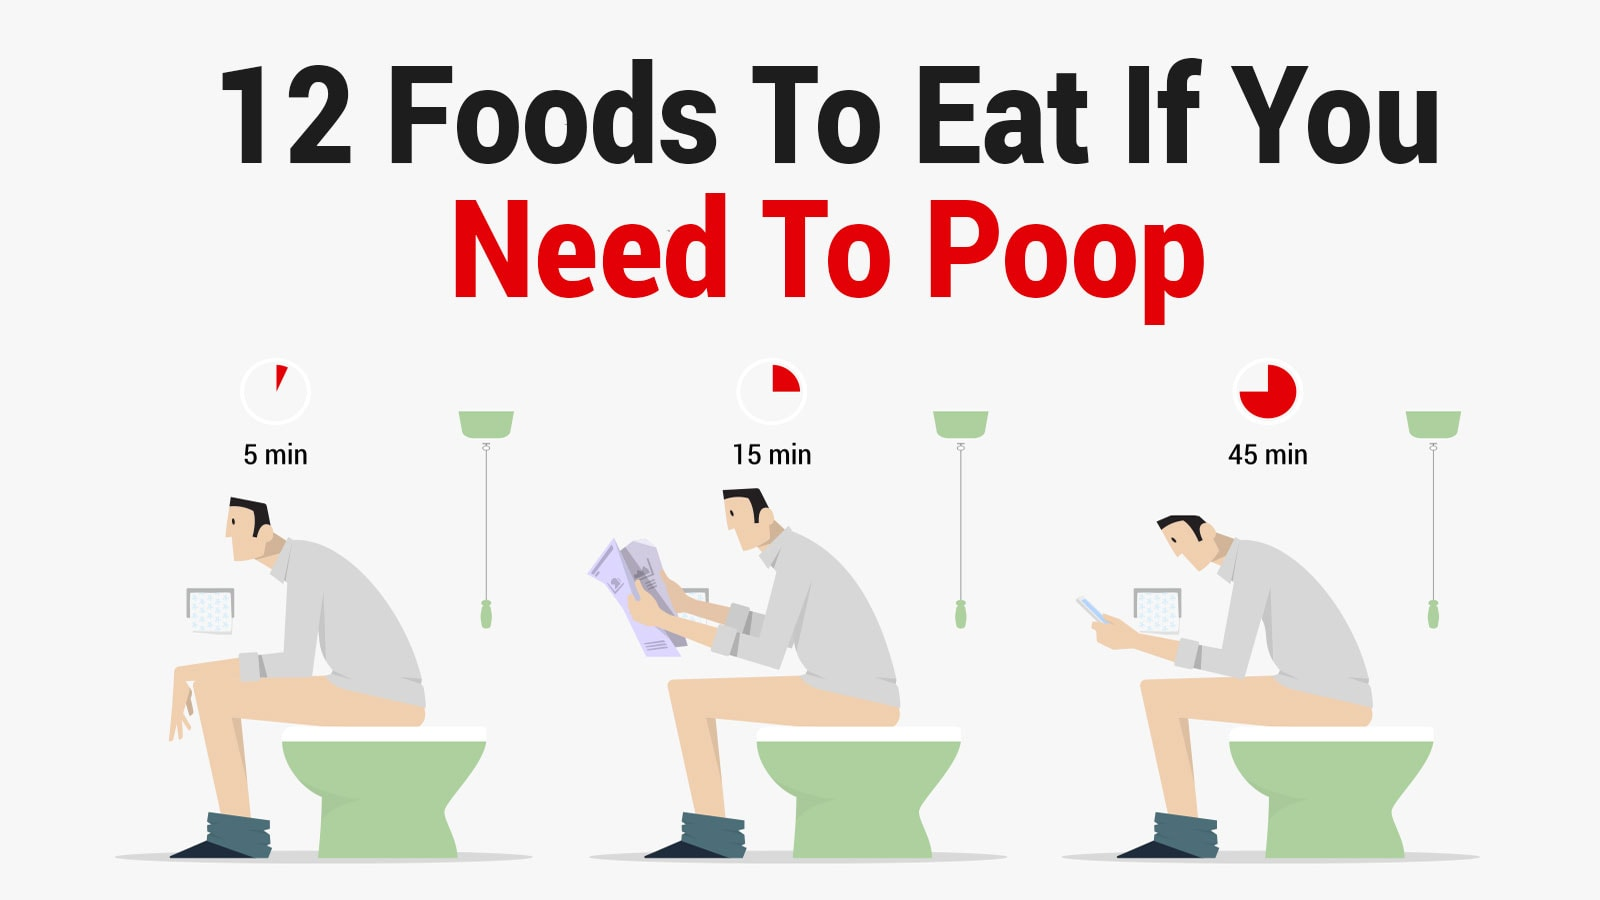 12 Foods To Eat If You Need To Poop